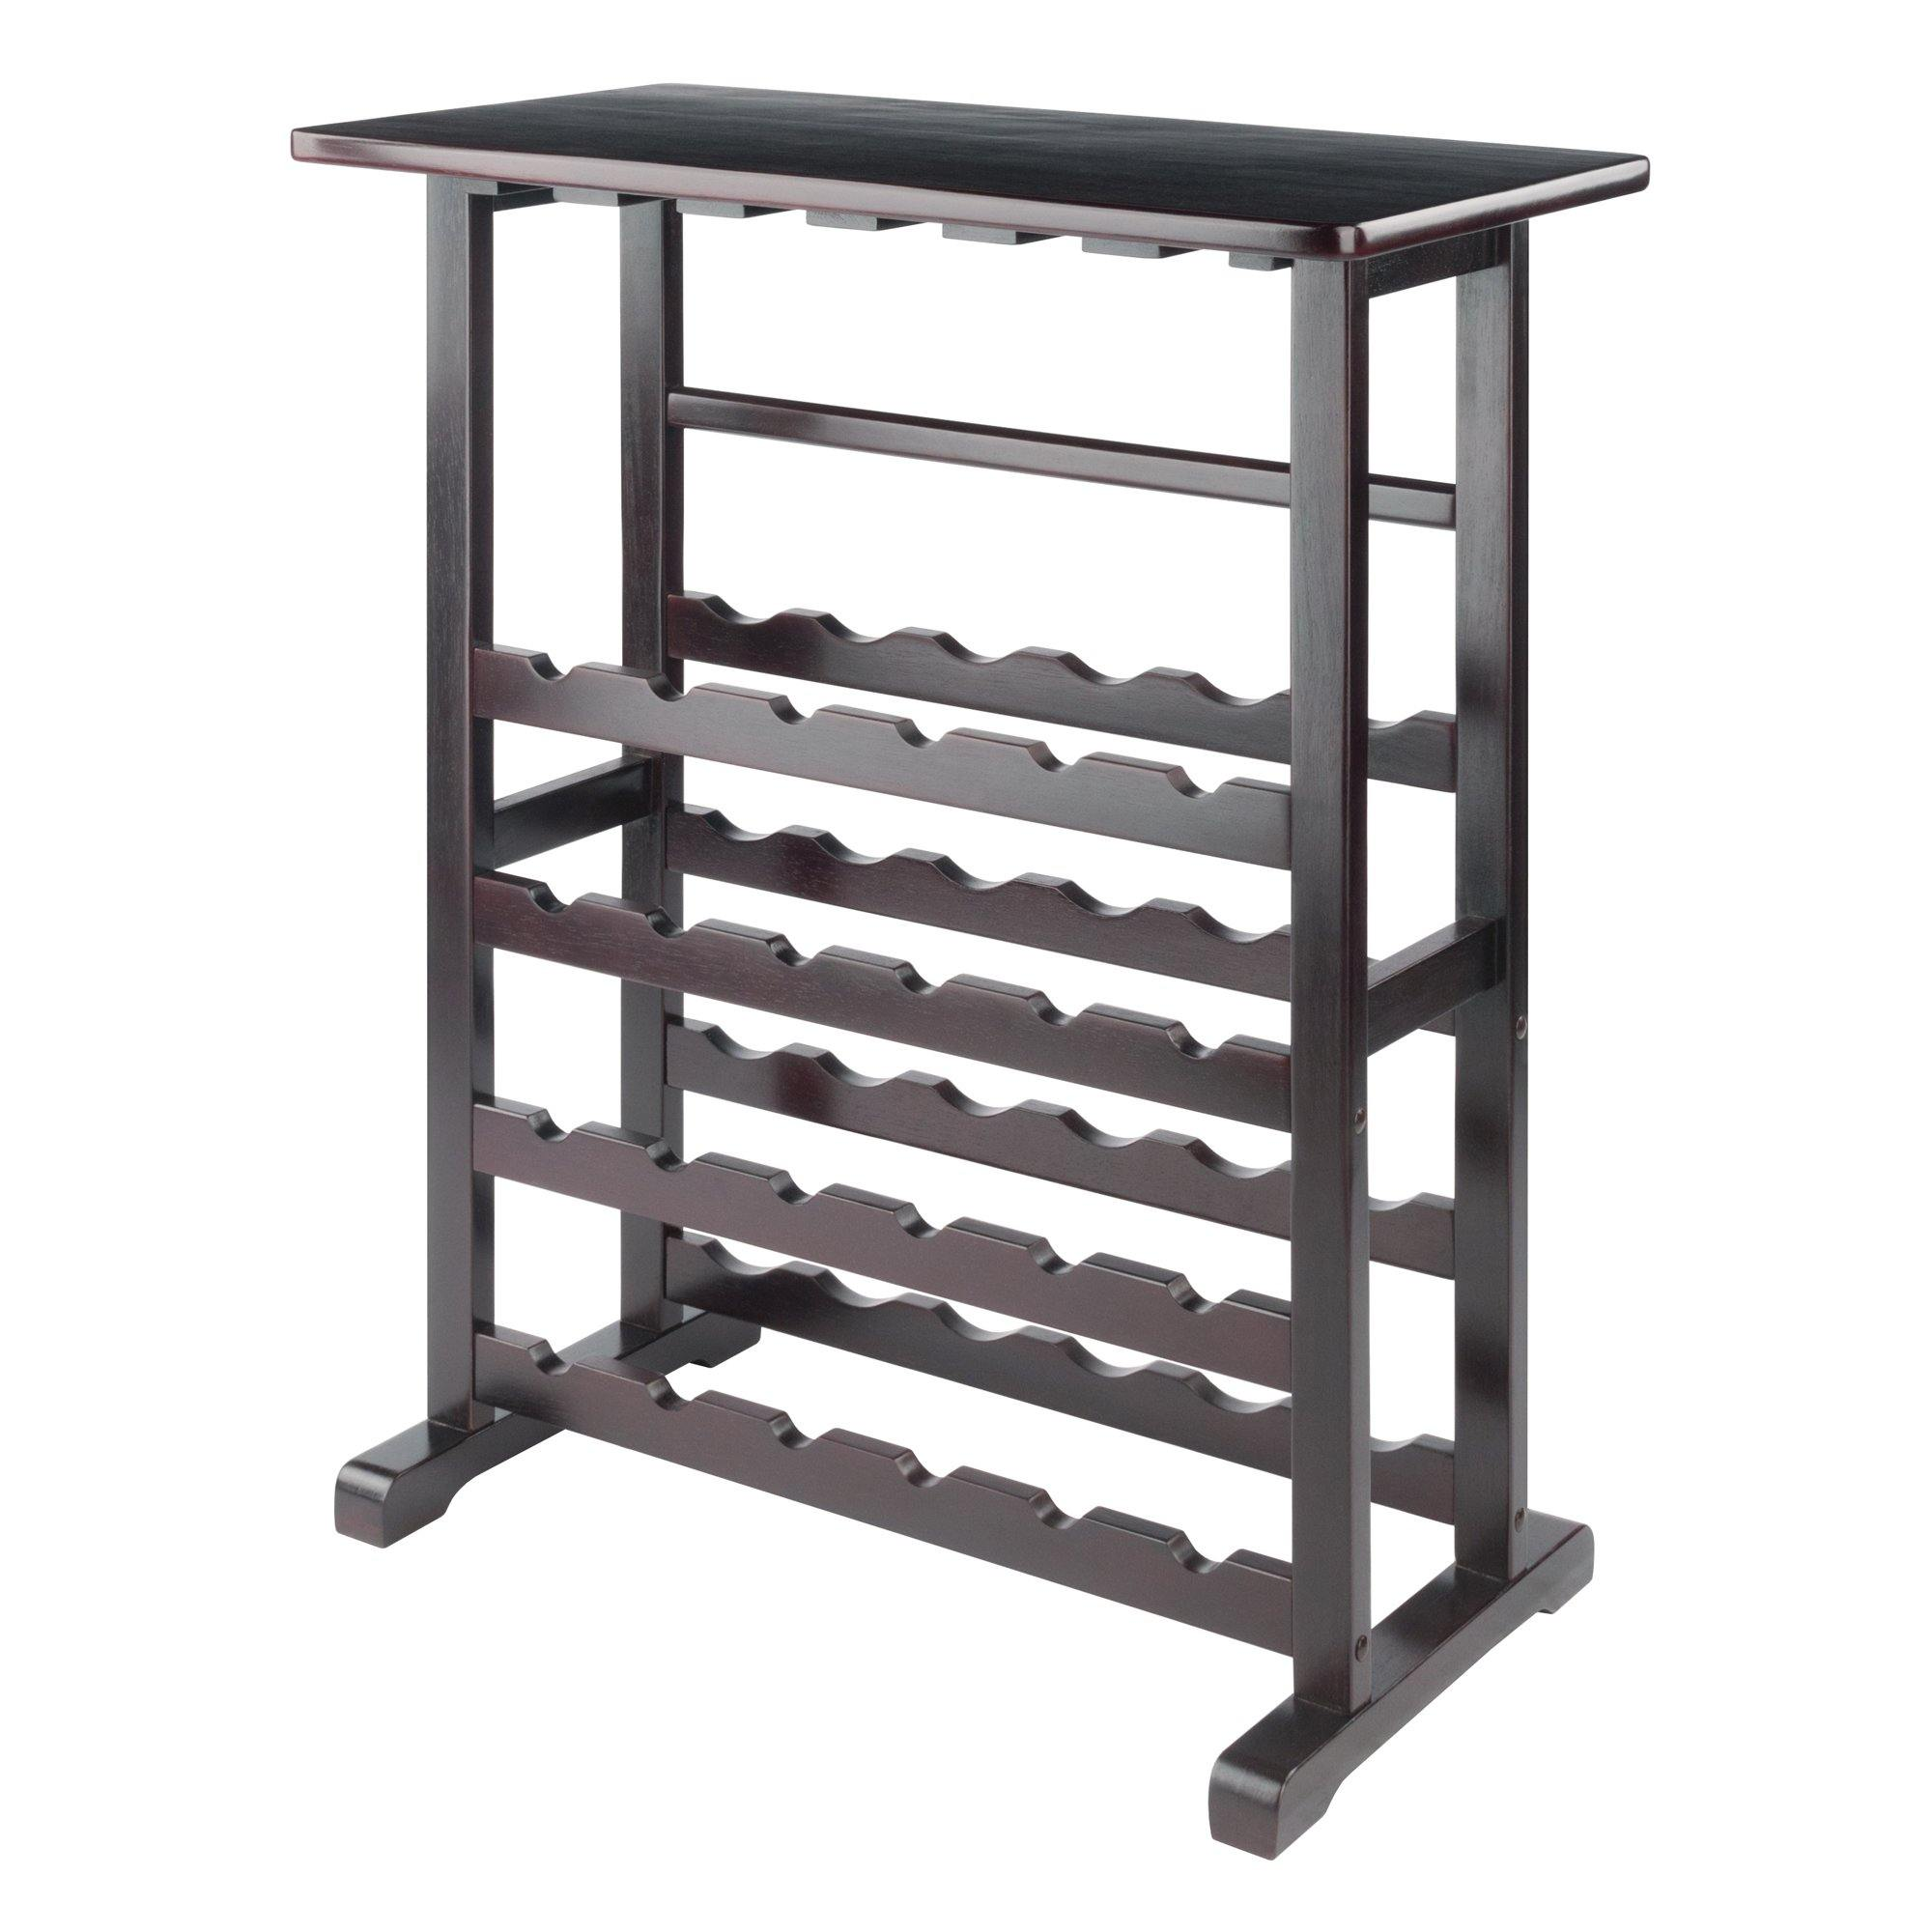 24 Bottle Wine Rack, Made Of Solid Wood, Espresso